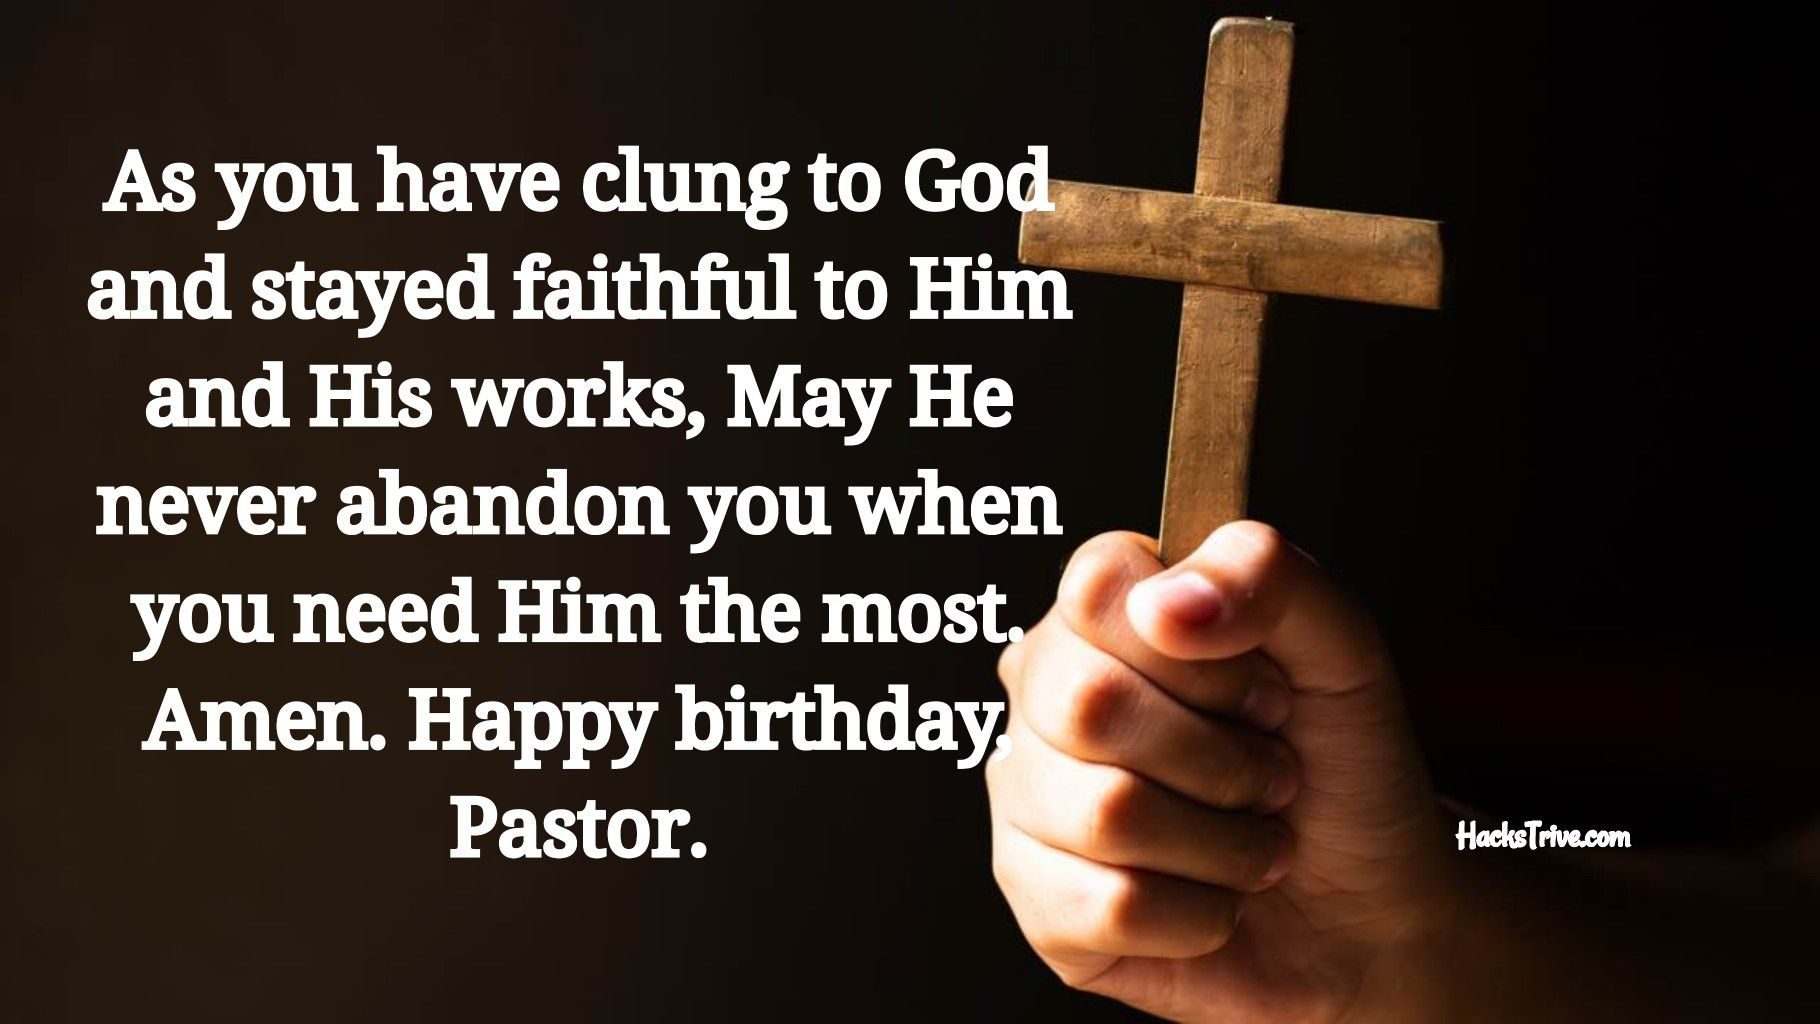 Inspirational Birthday Wishes For Pastor Happy Birthday Pastor Inspirational Birthday Wishes Birthday Wishes